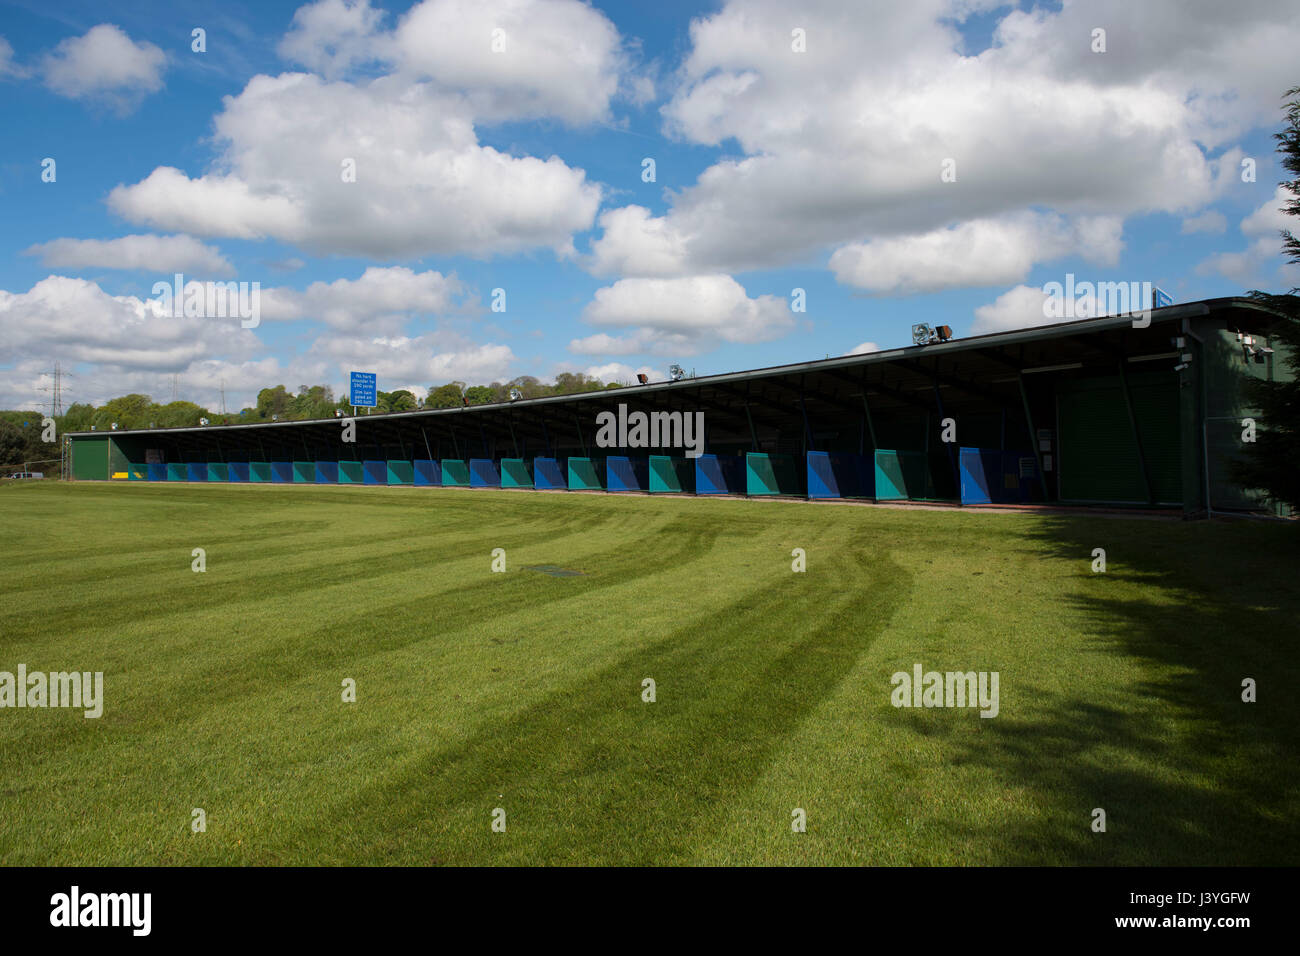 General view of Old St. Mellons golf driving range in Cardiff, Wales, UK. - Stock Image